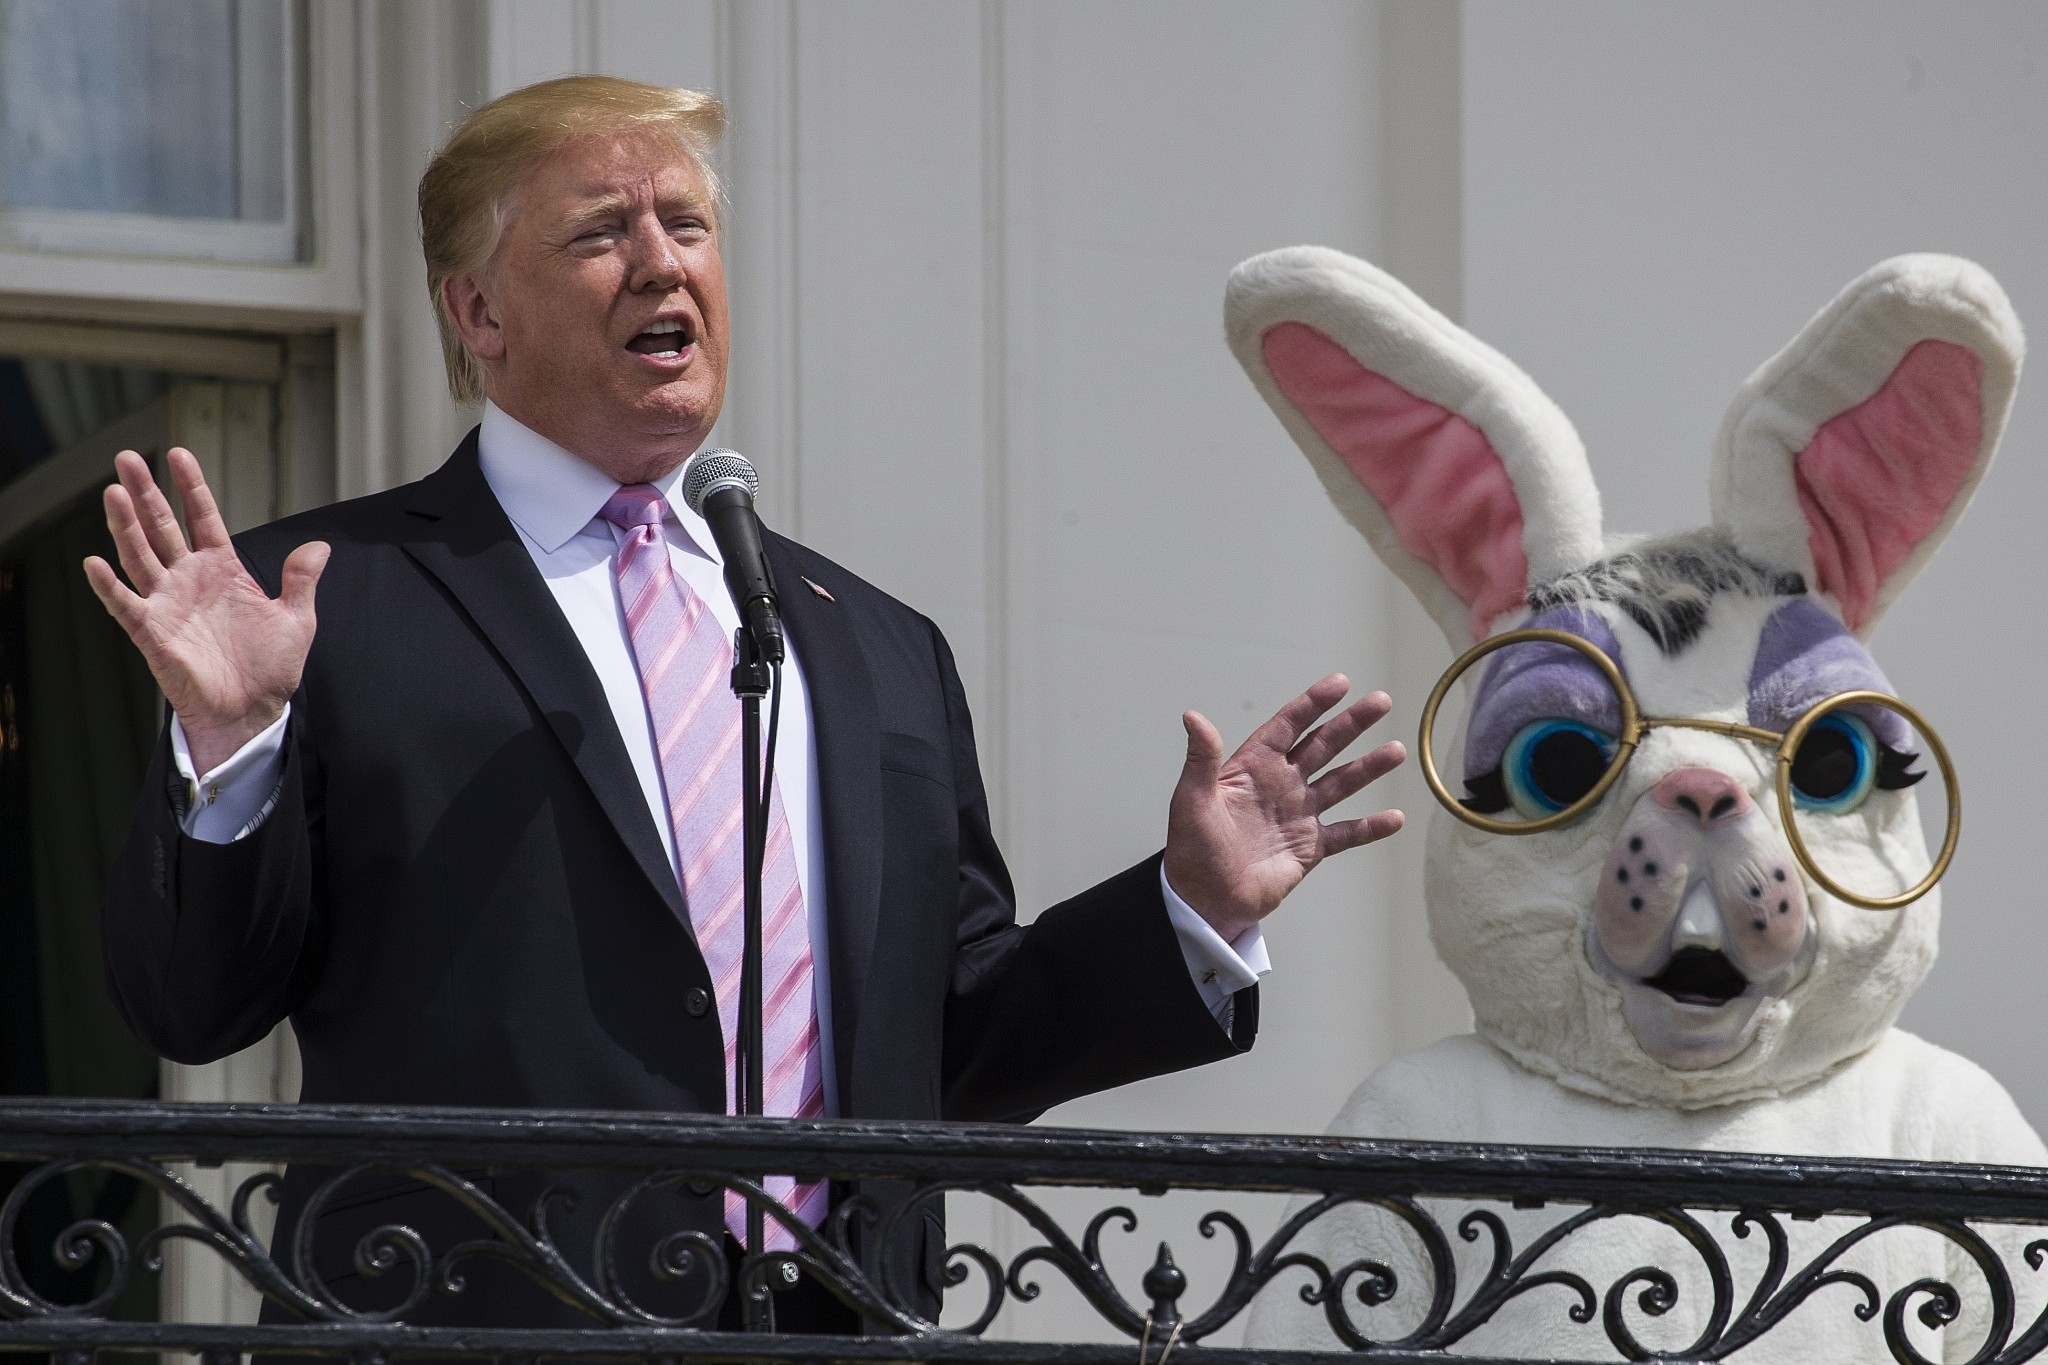 US President Donald Trump joined by the Easter Bunny speaks from the Truman Balcony of the White House in Washington